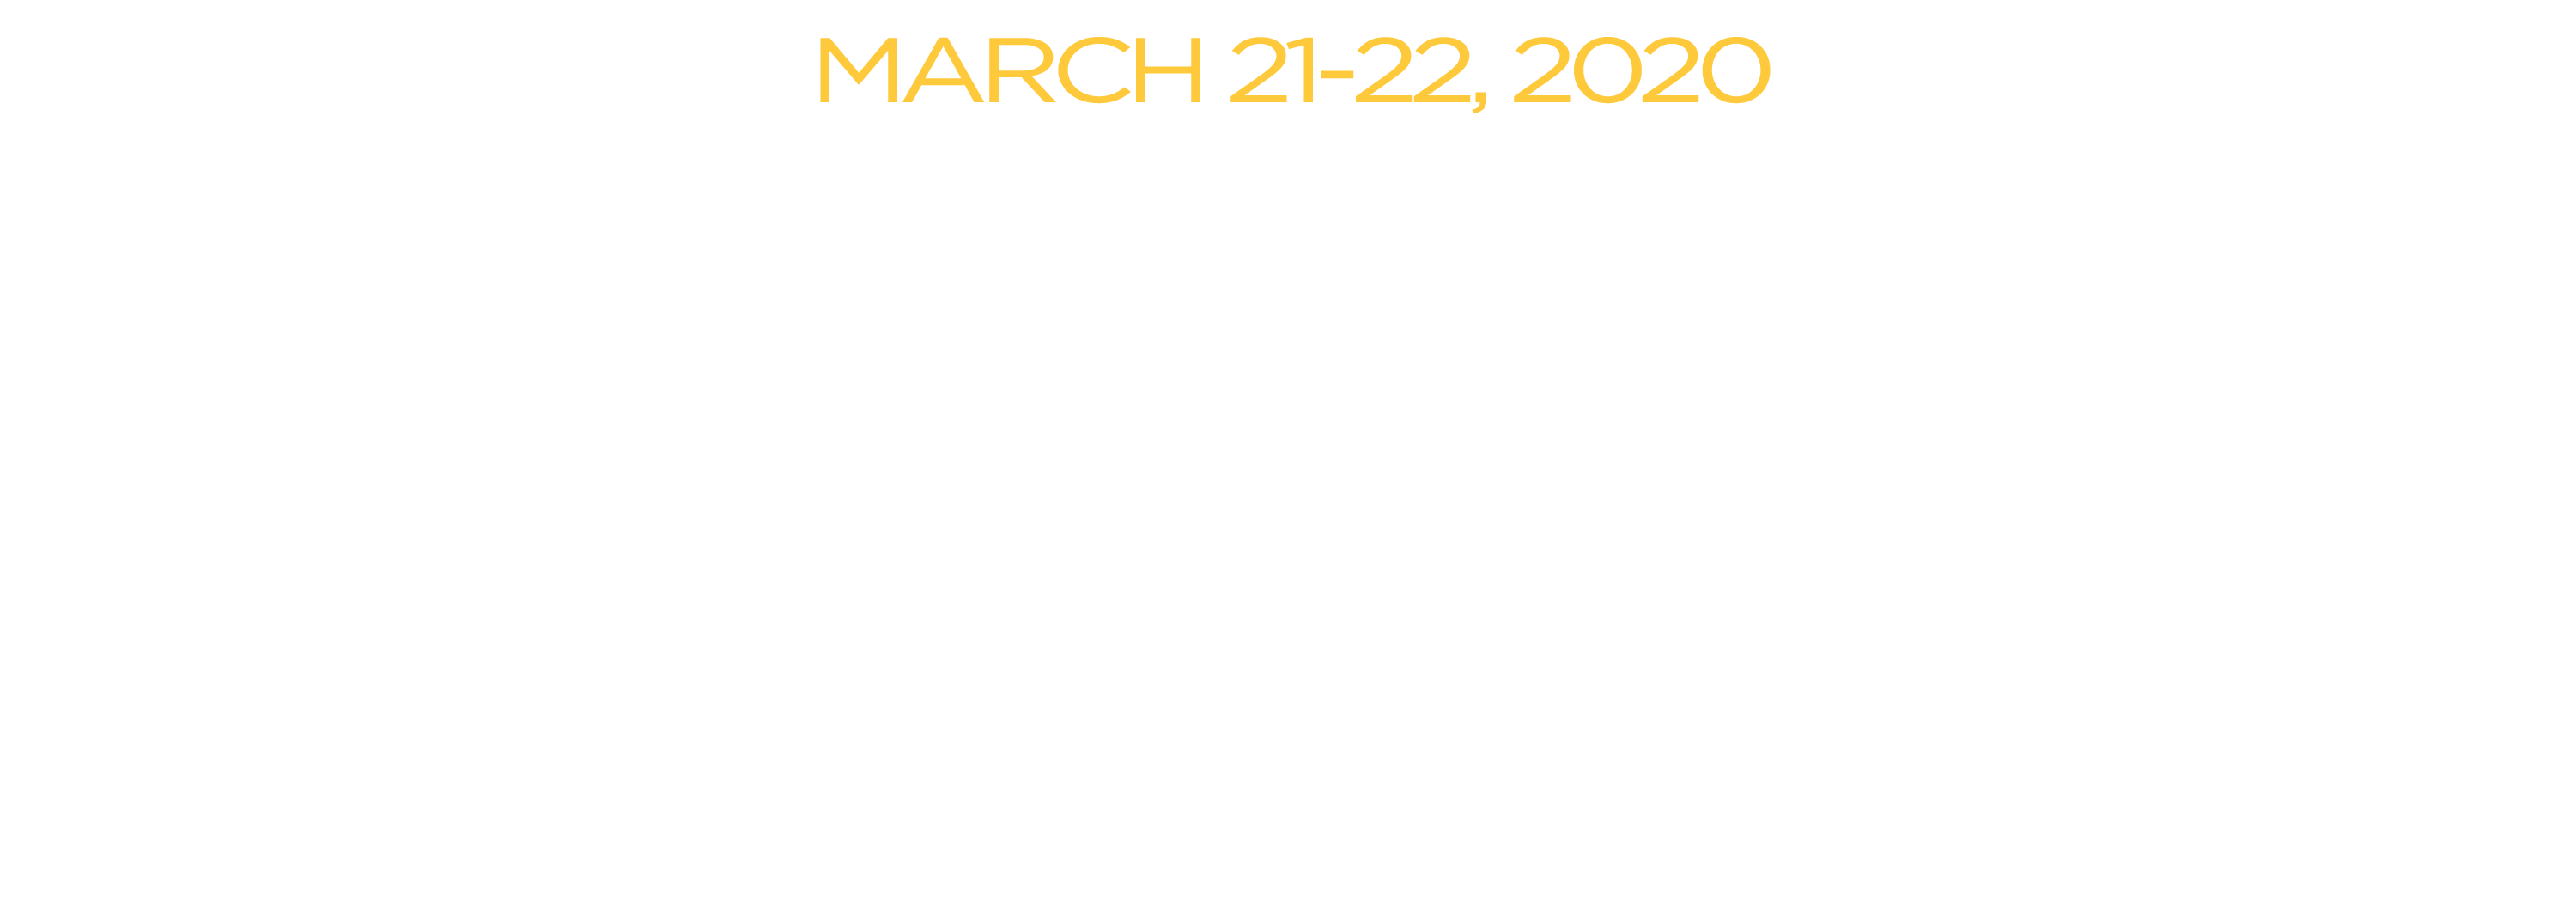 marquis-03-21-20-slider-2z.png